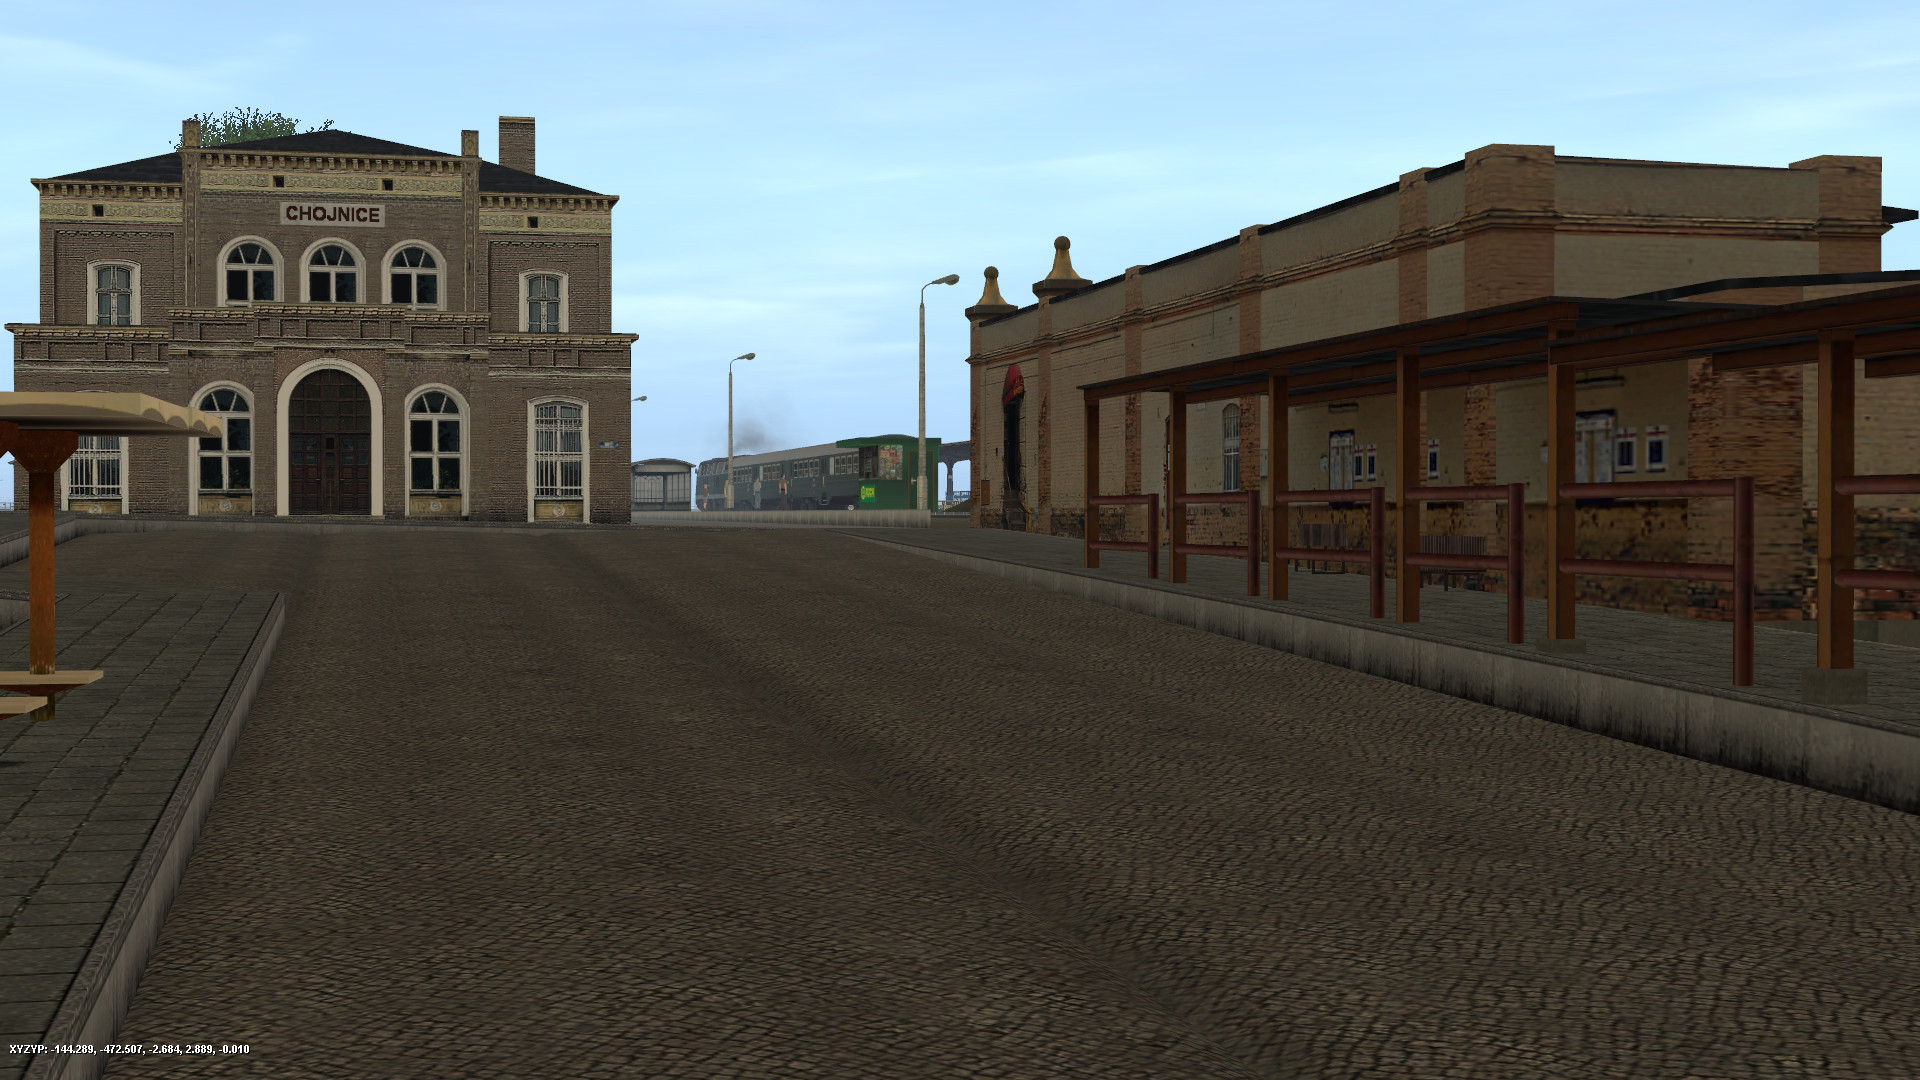 adamstan-trainz.pl/downloads/images/adamstan_20171030_0002.jpg